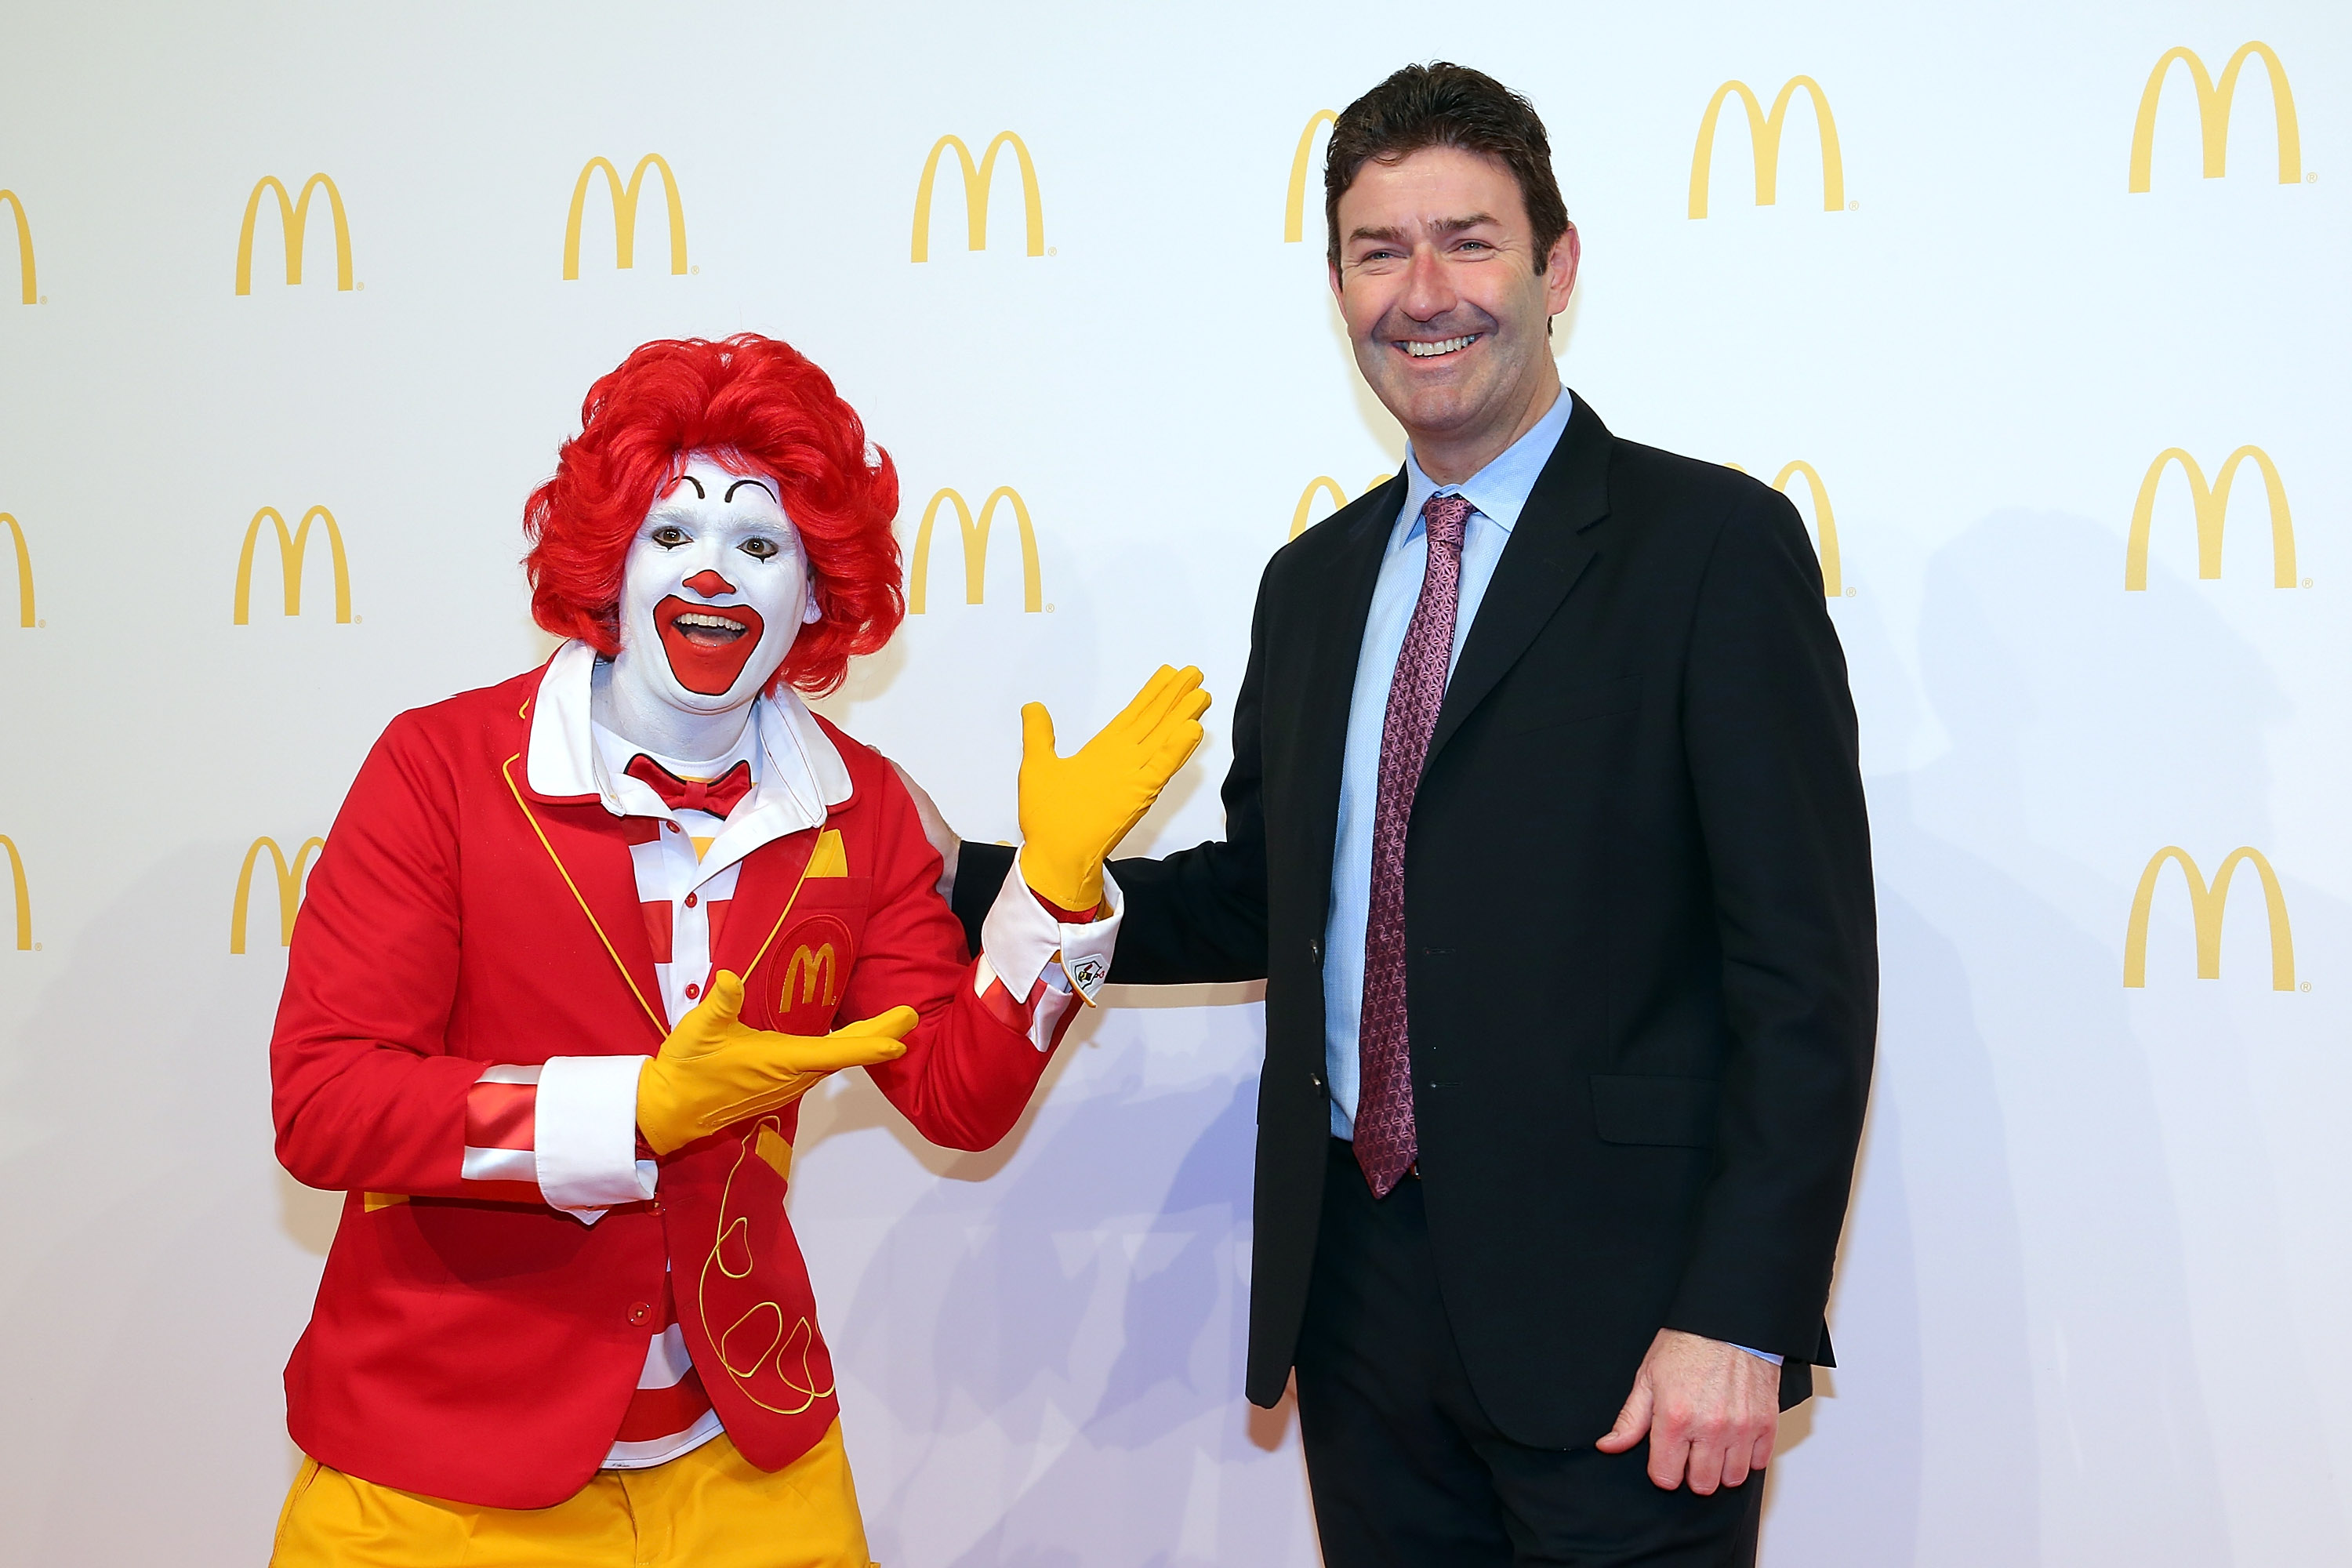 McDonald's CEO Sticks to His Guns: 'Franchisees Set Their Own Pay Scales'